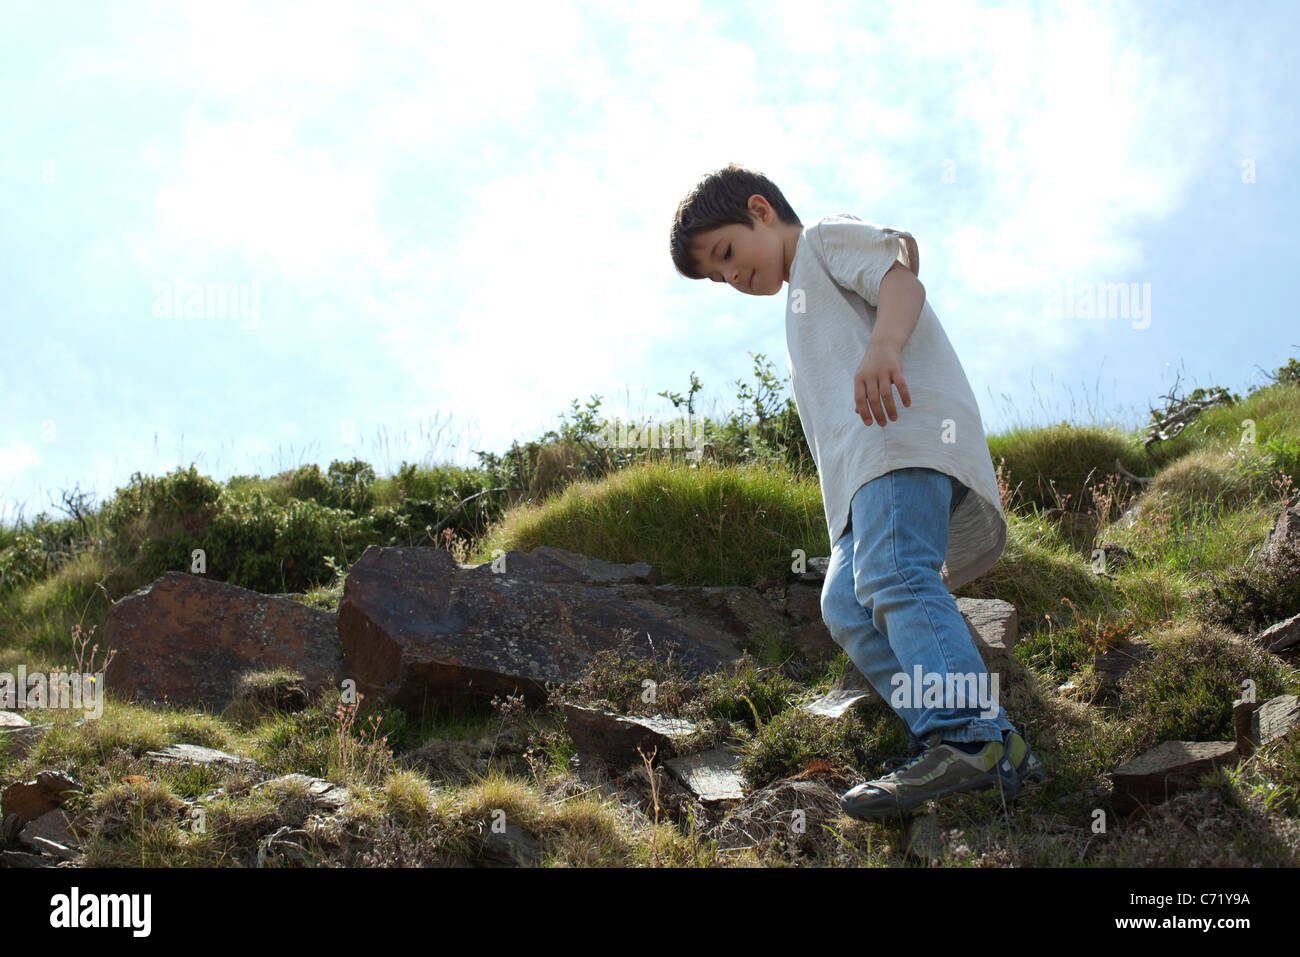 Boy standing on rocky hillside, low angle view - Stock Image